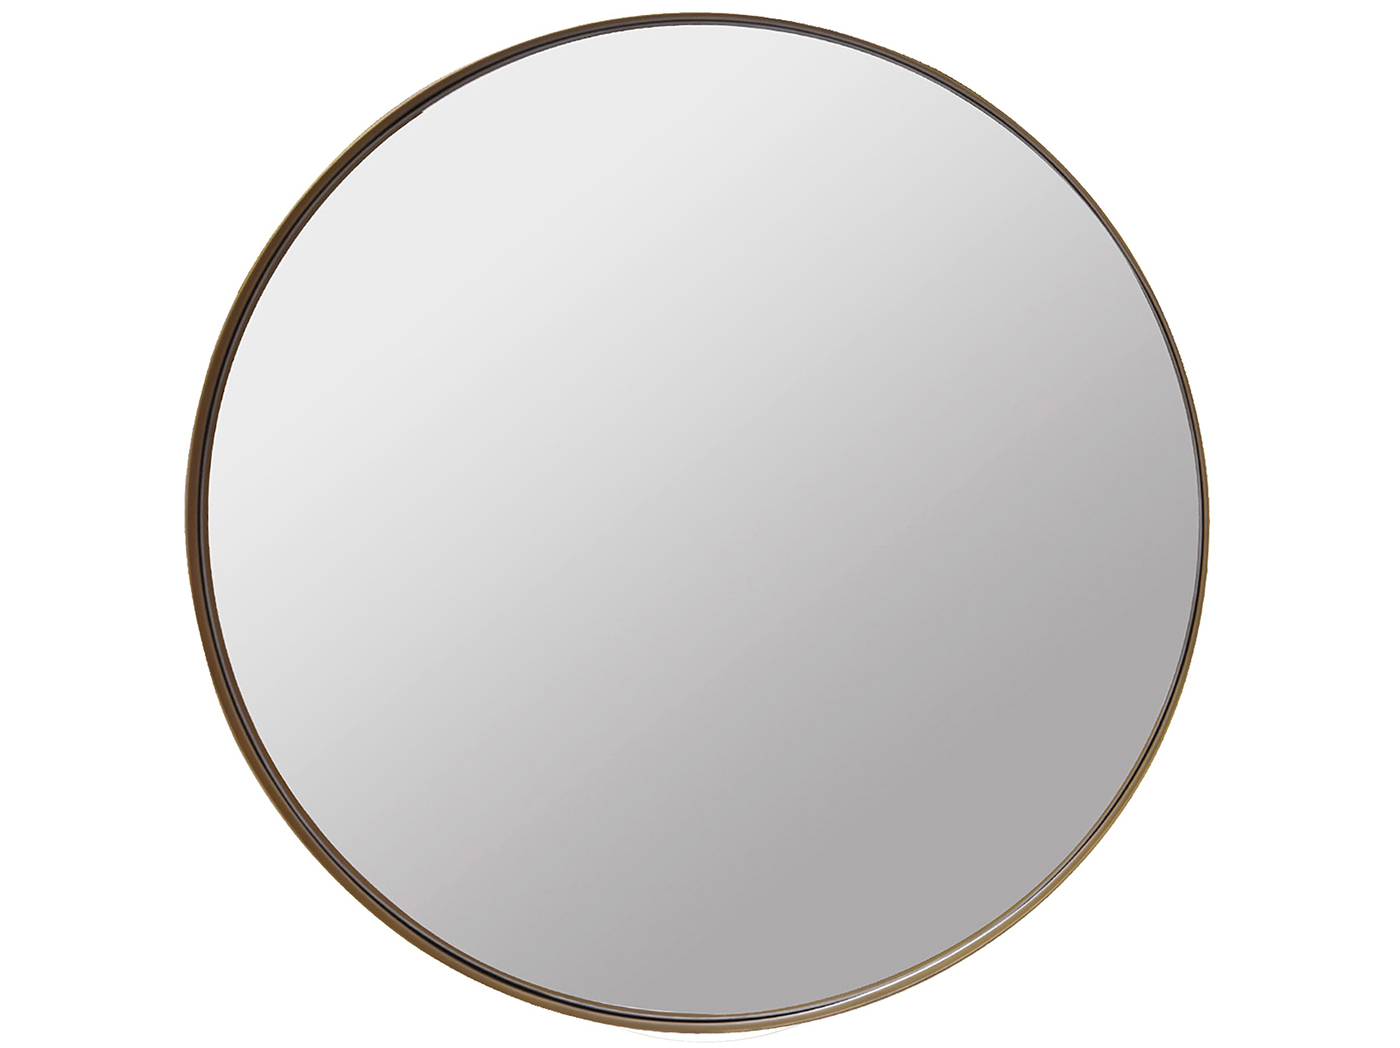 Antique Brass Metal Round Mirror 48""